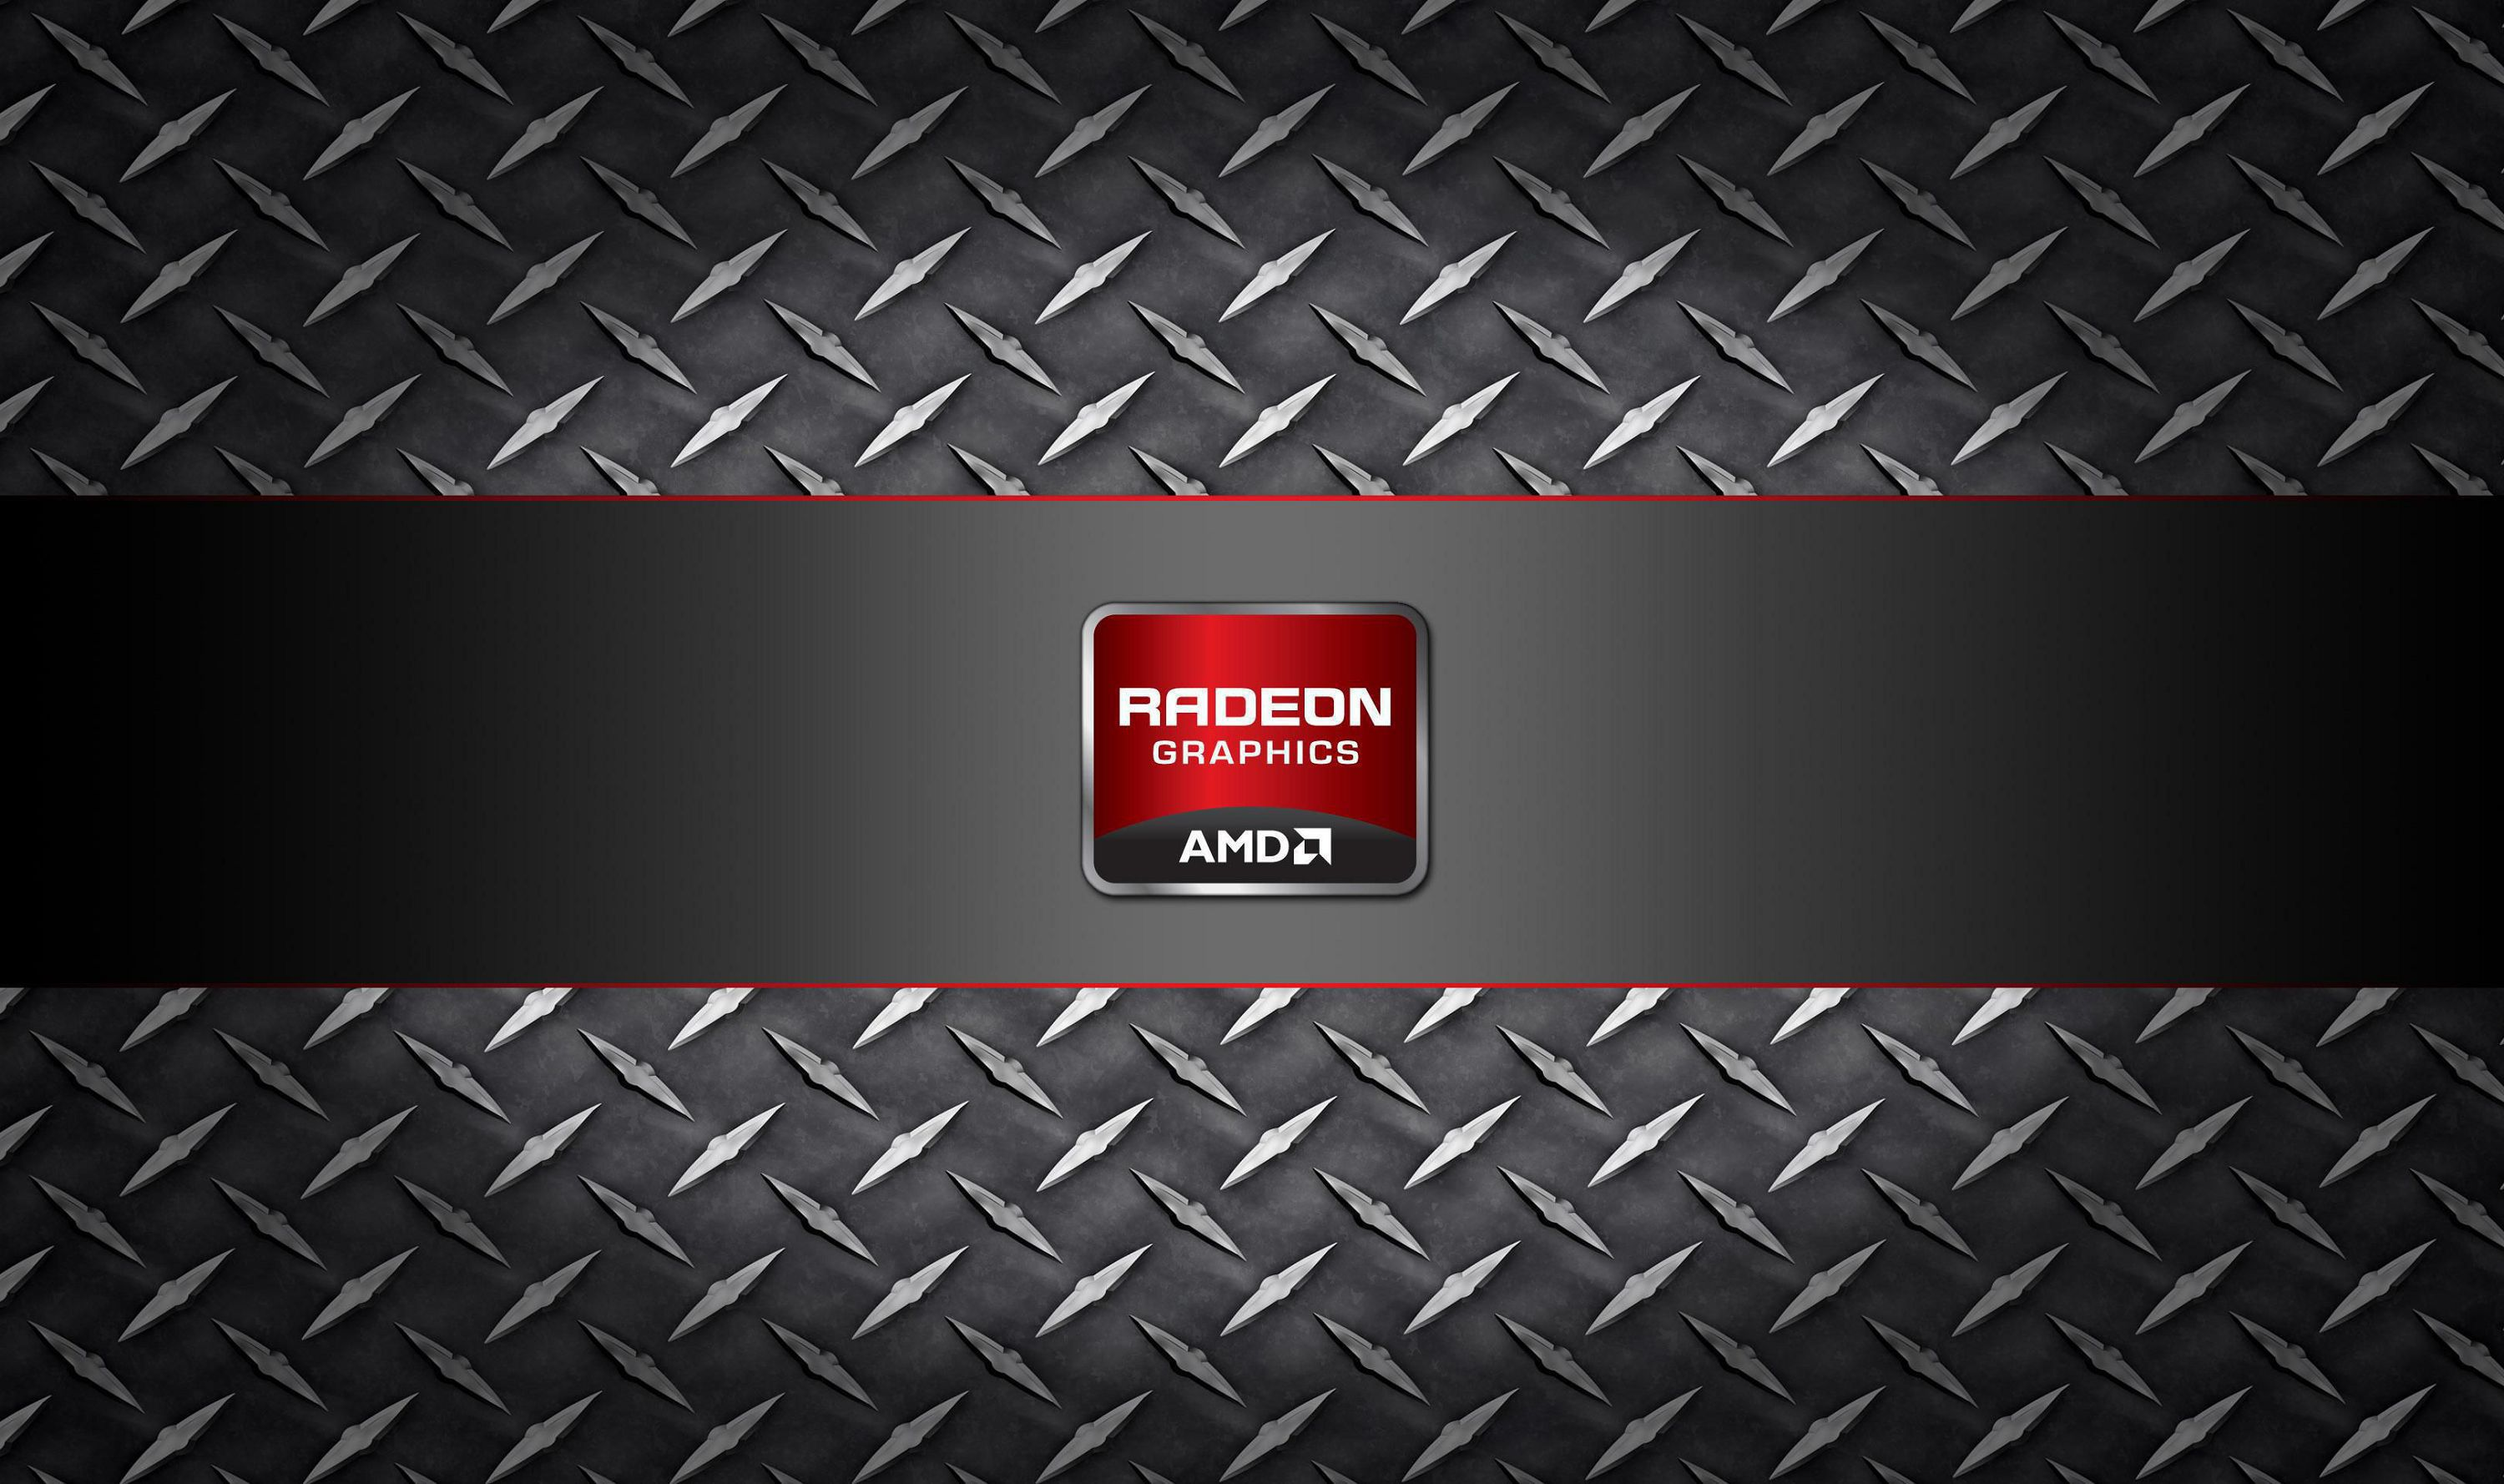 Ati Radeon Wallpapers